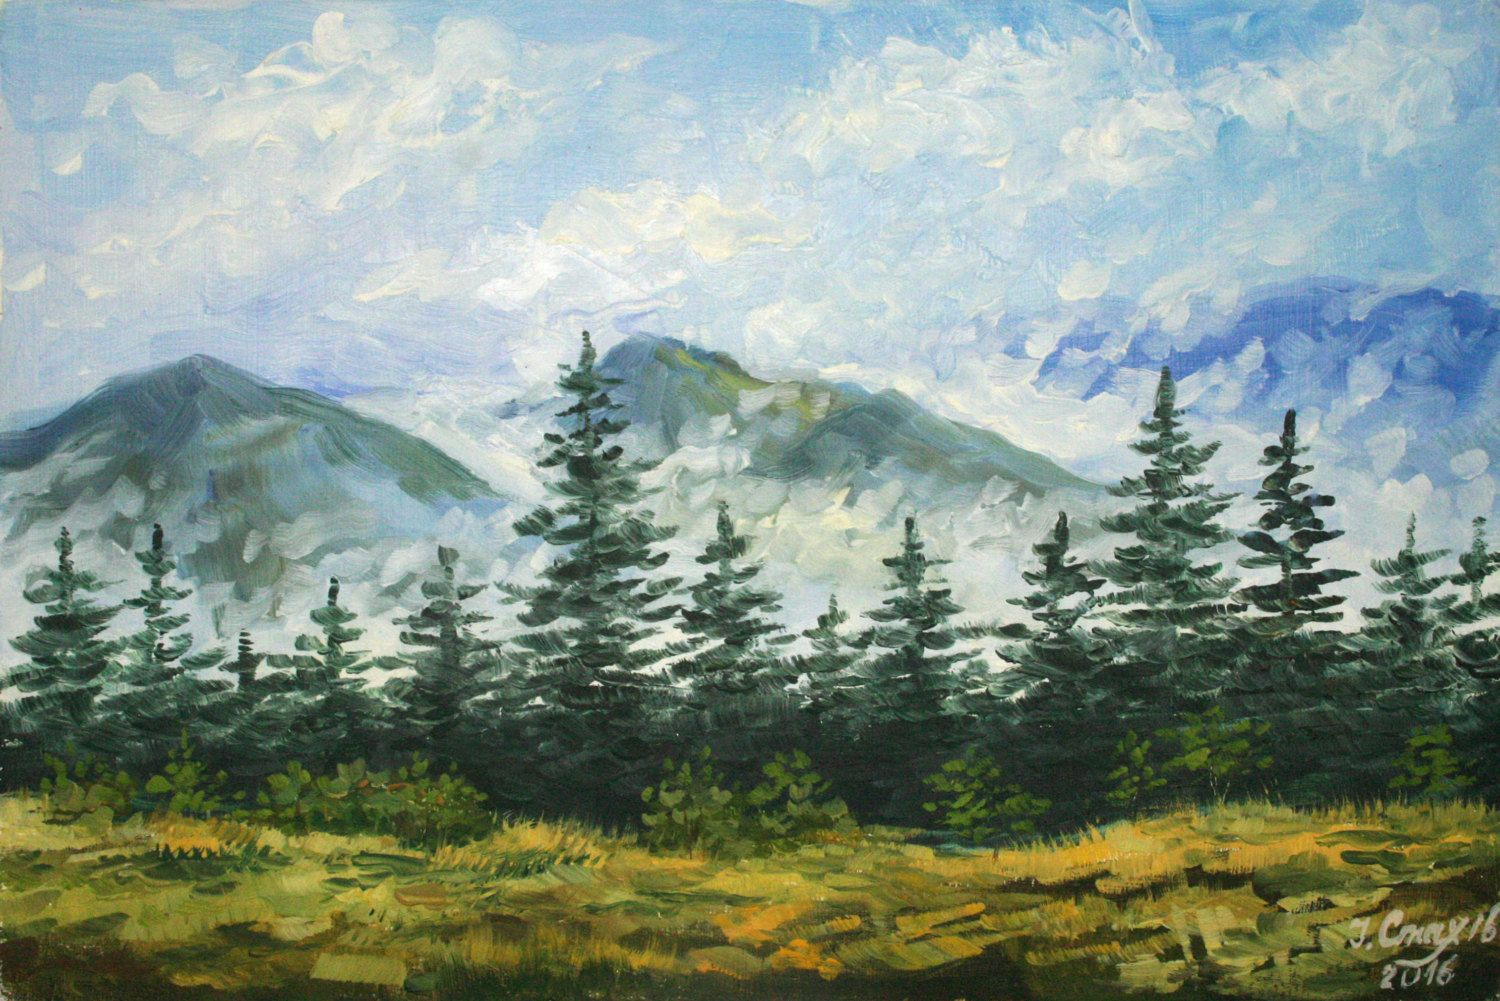 Mountain Landscape Painting Nature Oil Painting Scenery Painting Small Format Miniature Gift Mountain Landscape Painting Scenery Paintings Oil Painting Nature